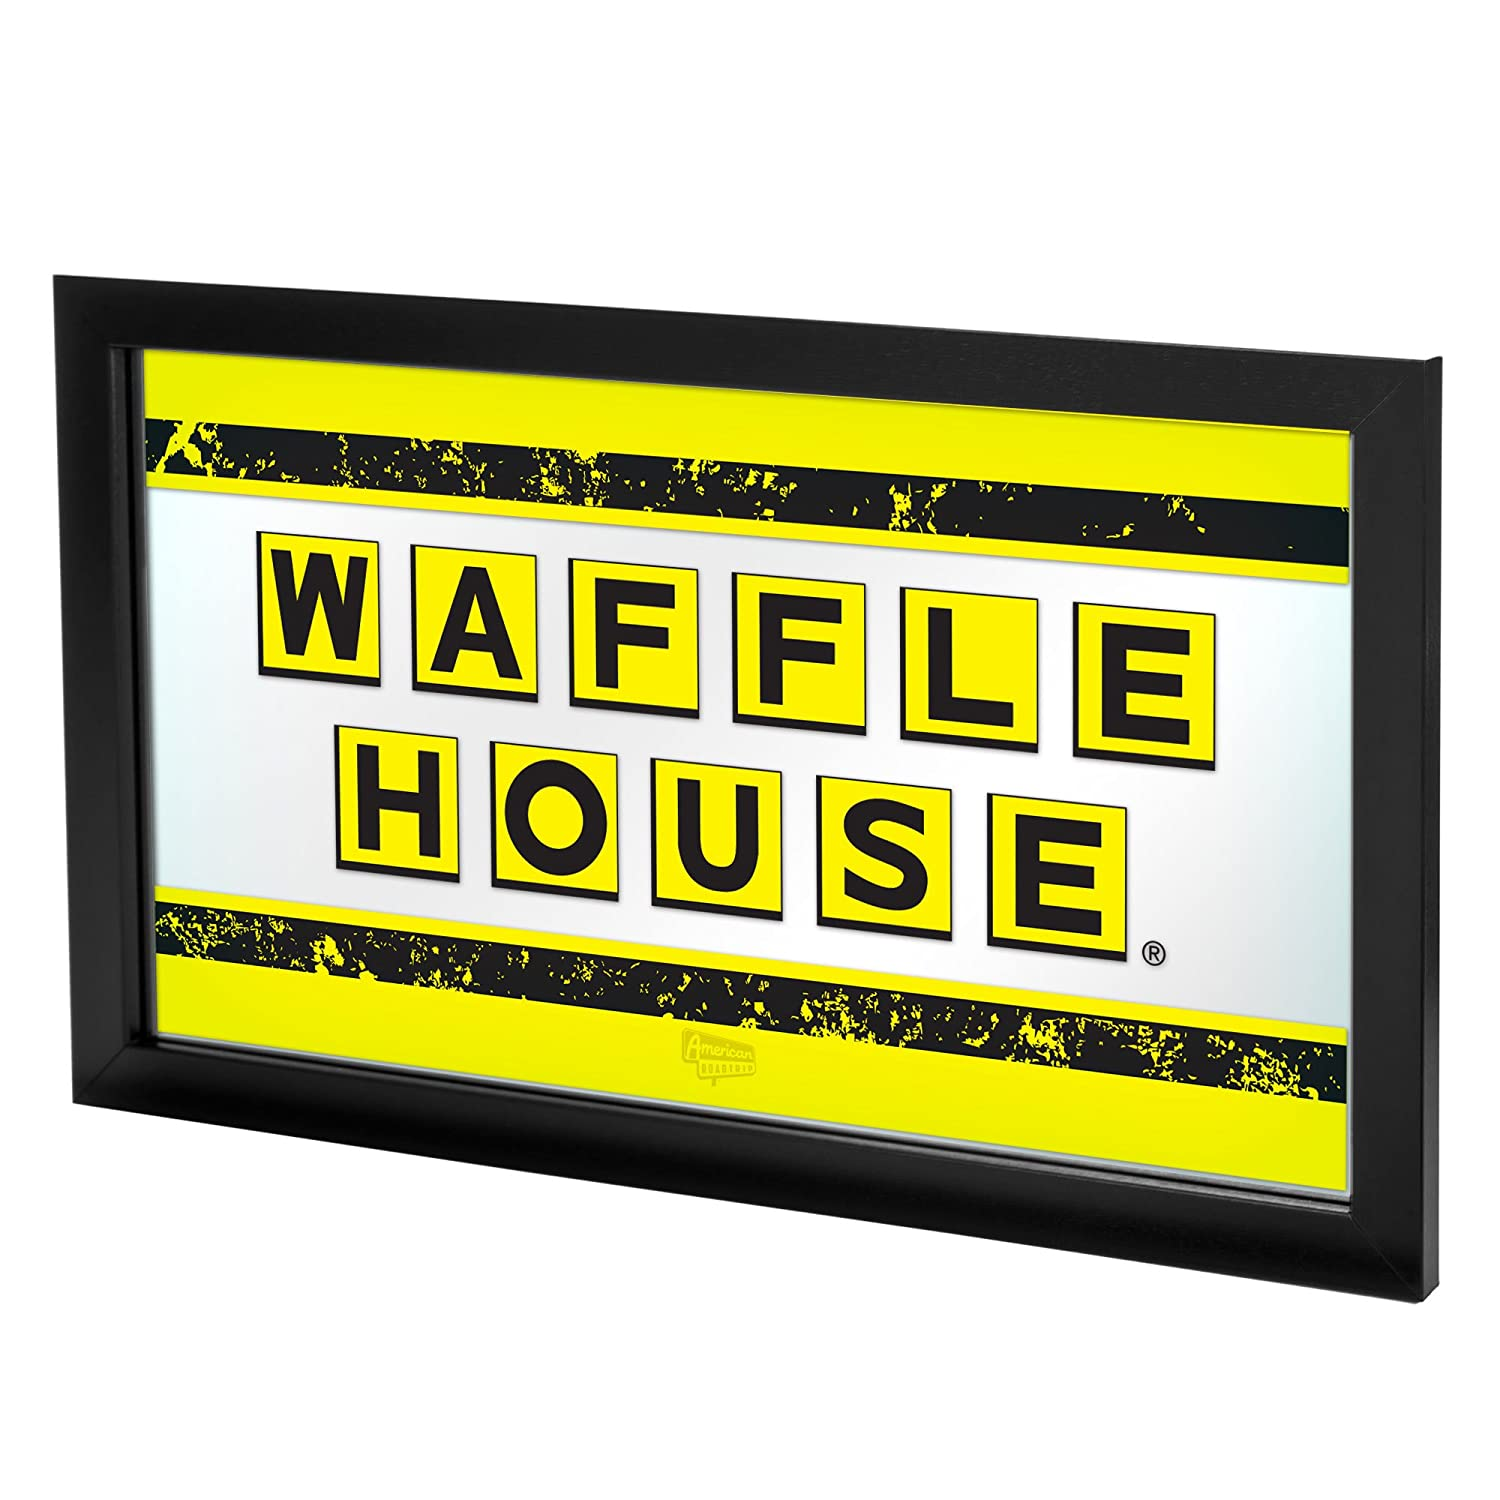 Waffle House Vintage Framed Logo Mirror Amazon In Sports Fitness Outdoors Reddit gives you the best of the internet in one place. amazon in